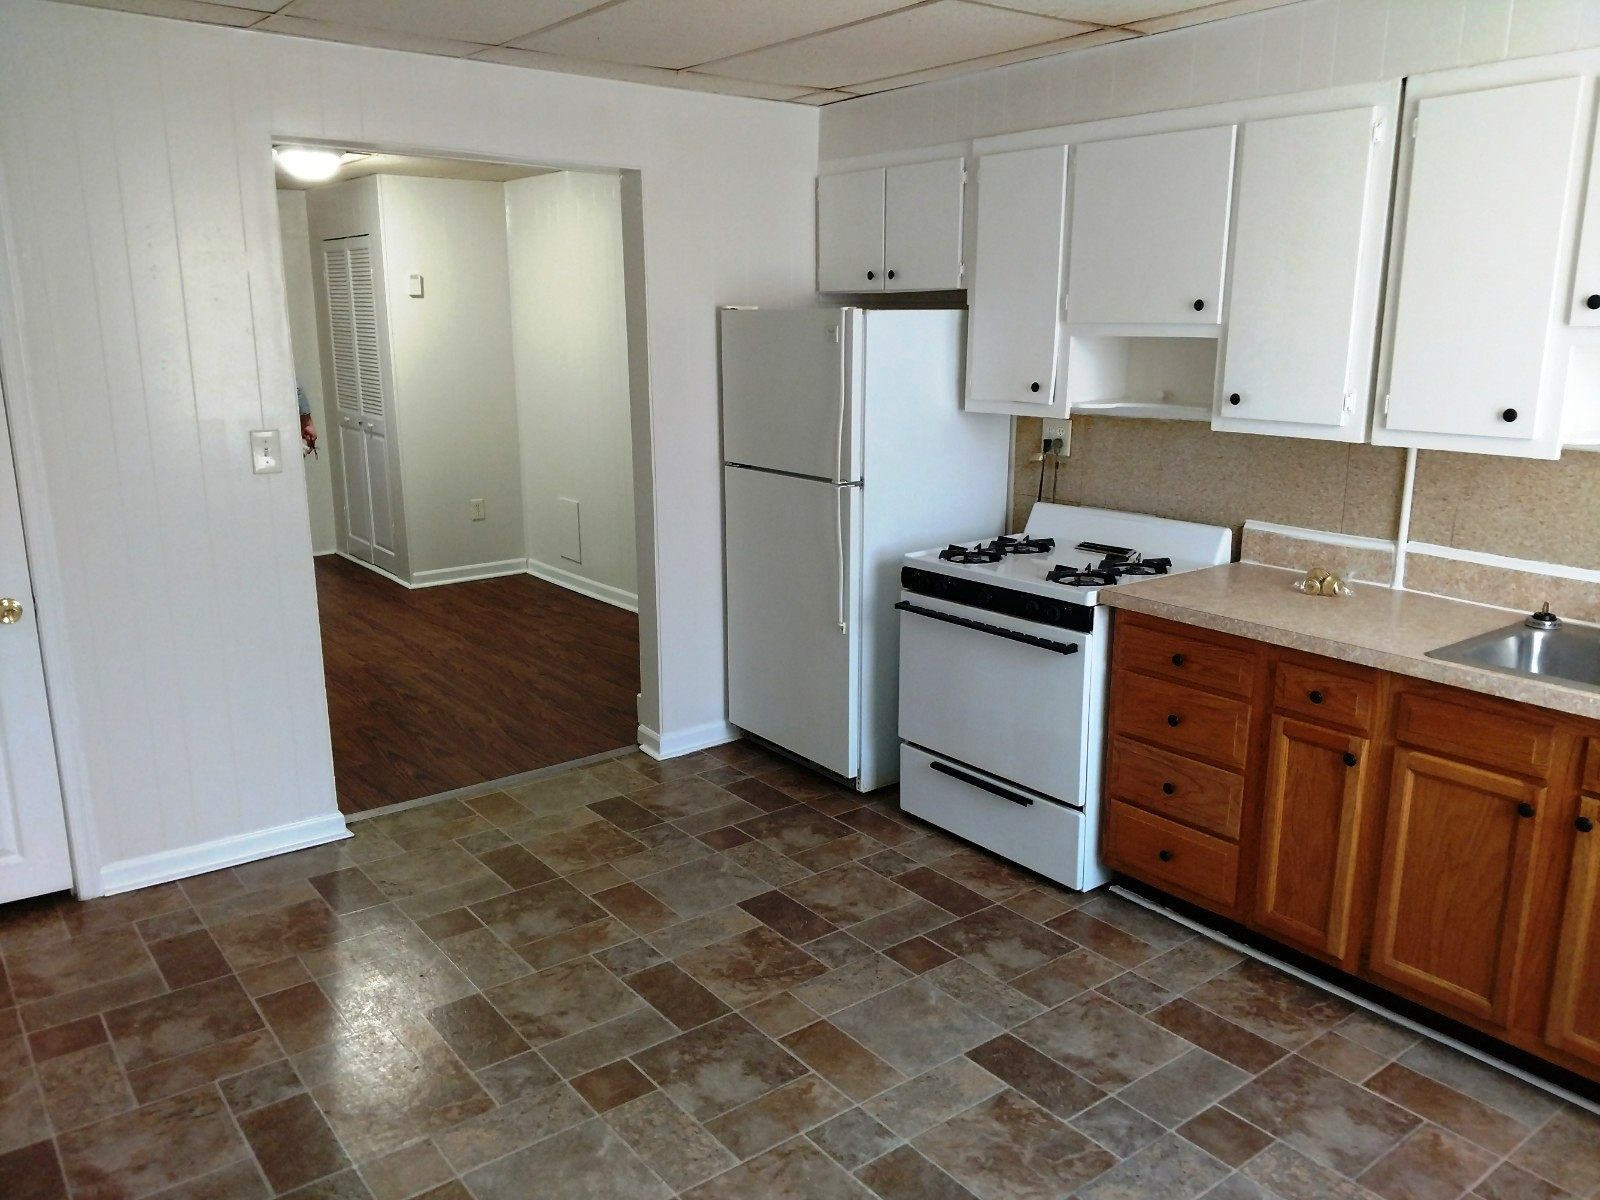 Select Link For More Info And Photos Gosection8 Section 8 Housing In Baltimore Md 1 Bedroom Bathroom Rental Apt 4749963